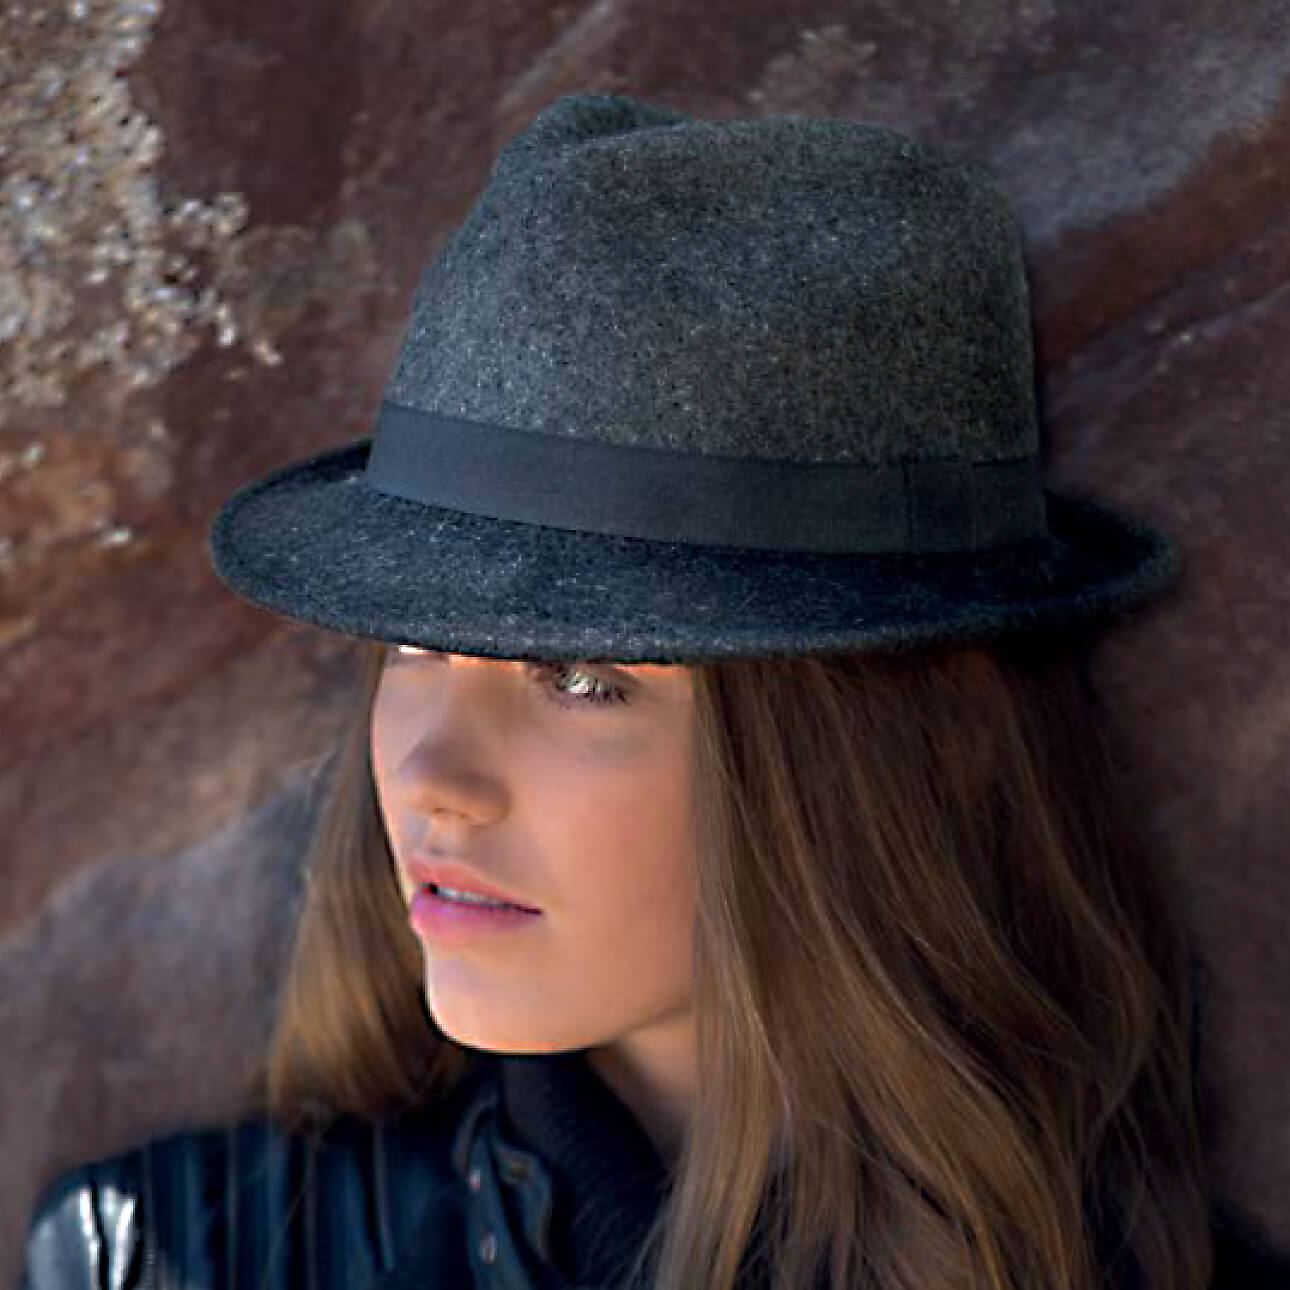 RL328 vespa lambswool trilby. High quality ladies two toned trilby, crafted from super soft lambswool, finished with a simple grosgrain ribbon headband.